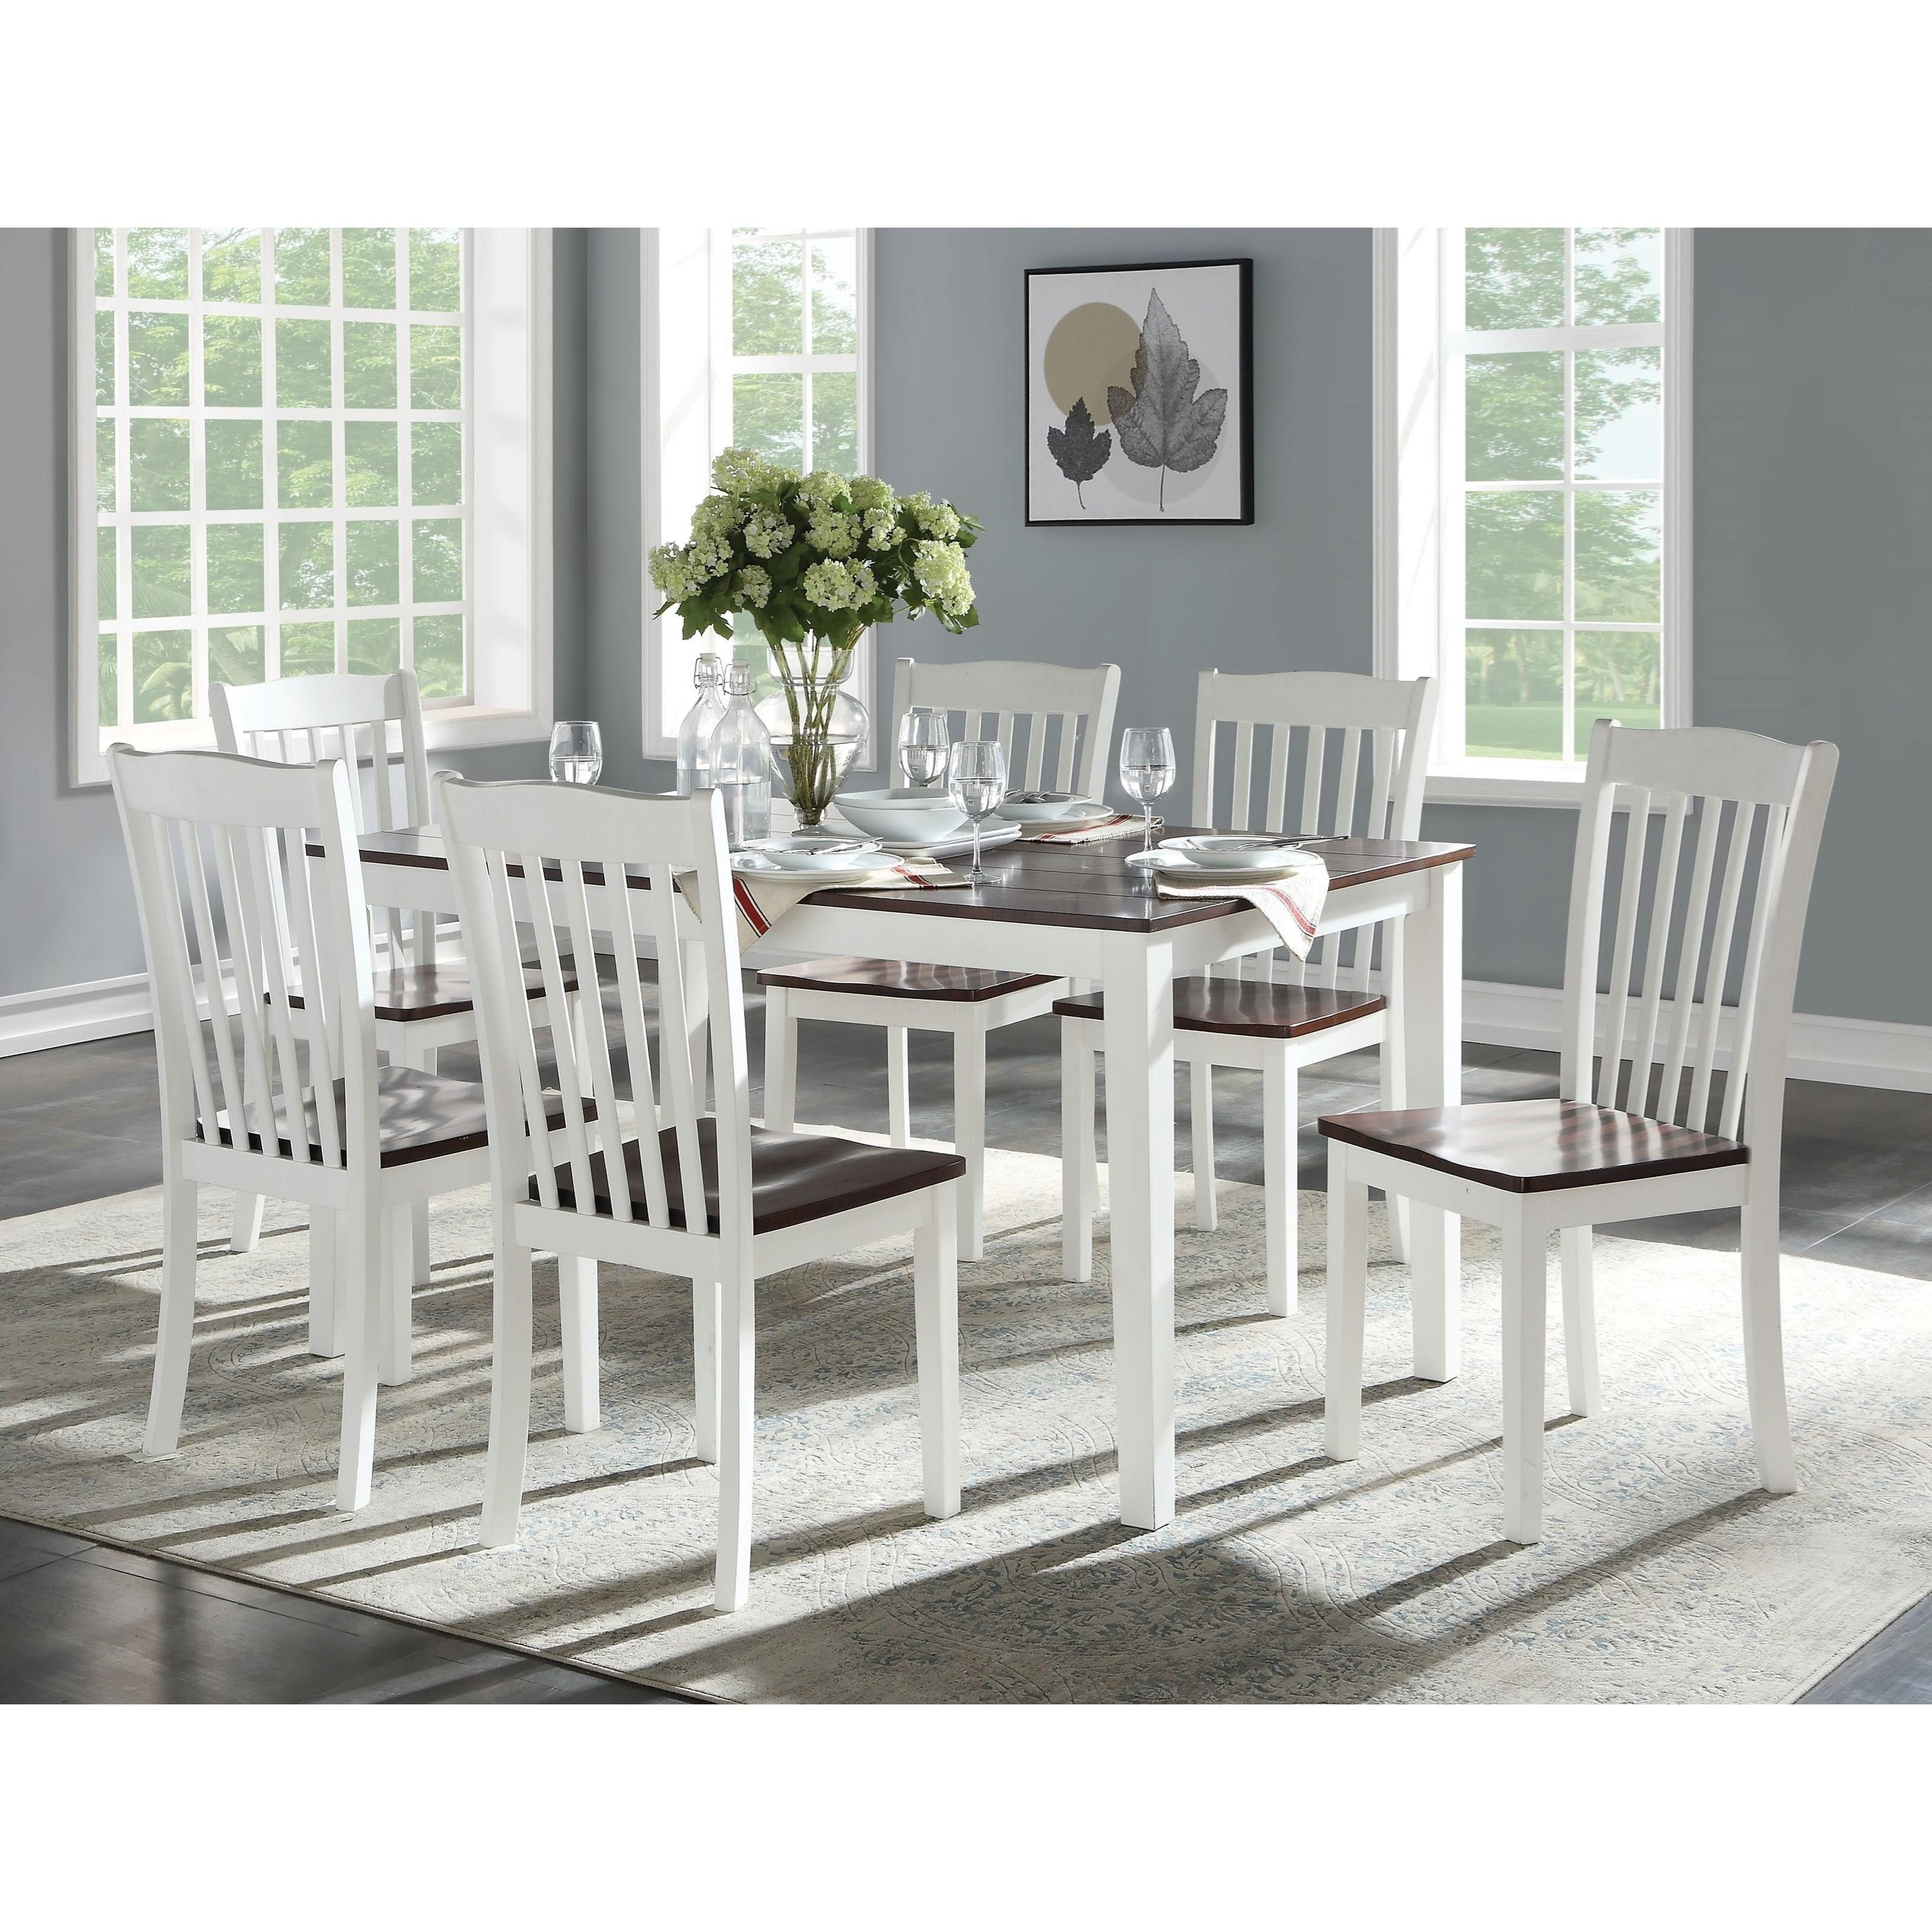 Green Leigh 7Pc Pk Dining Set by Acme Furniture at Dream Home Interiors